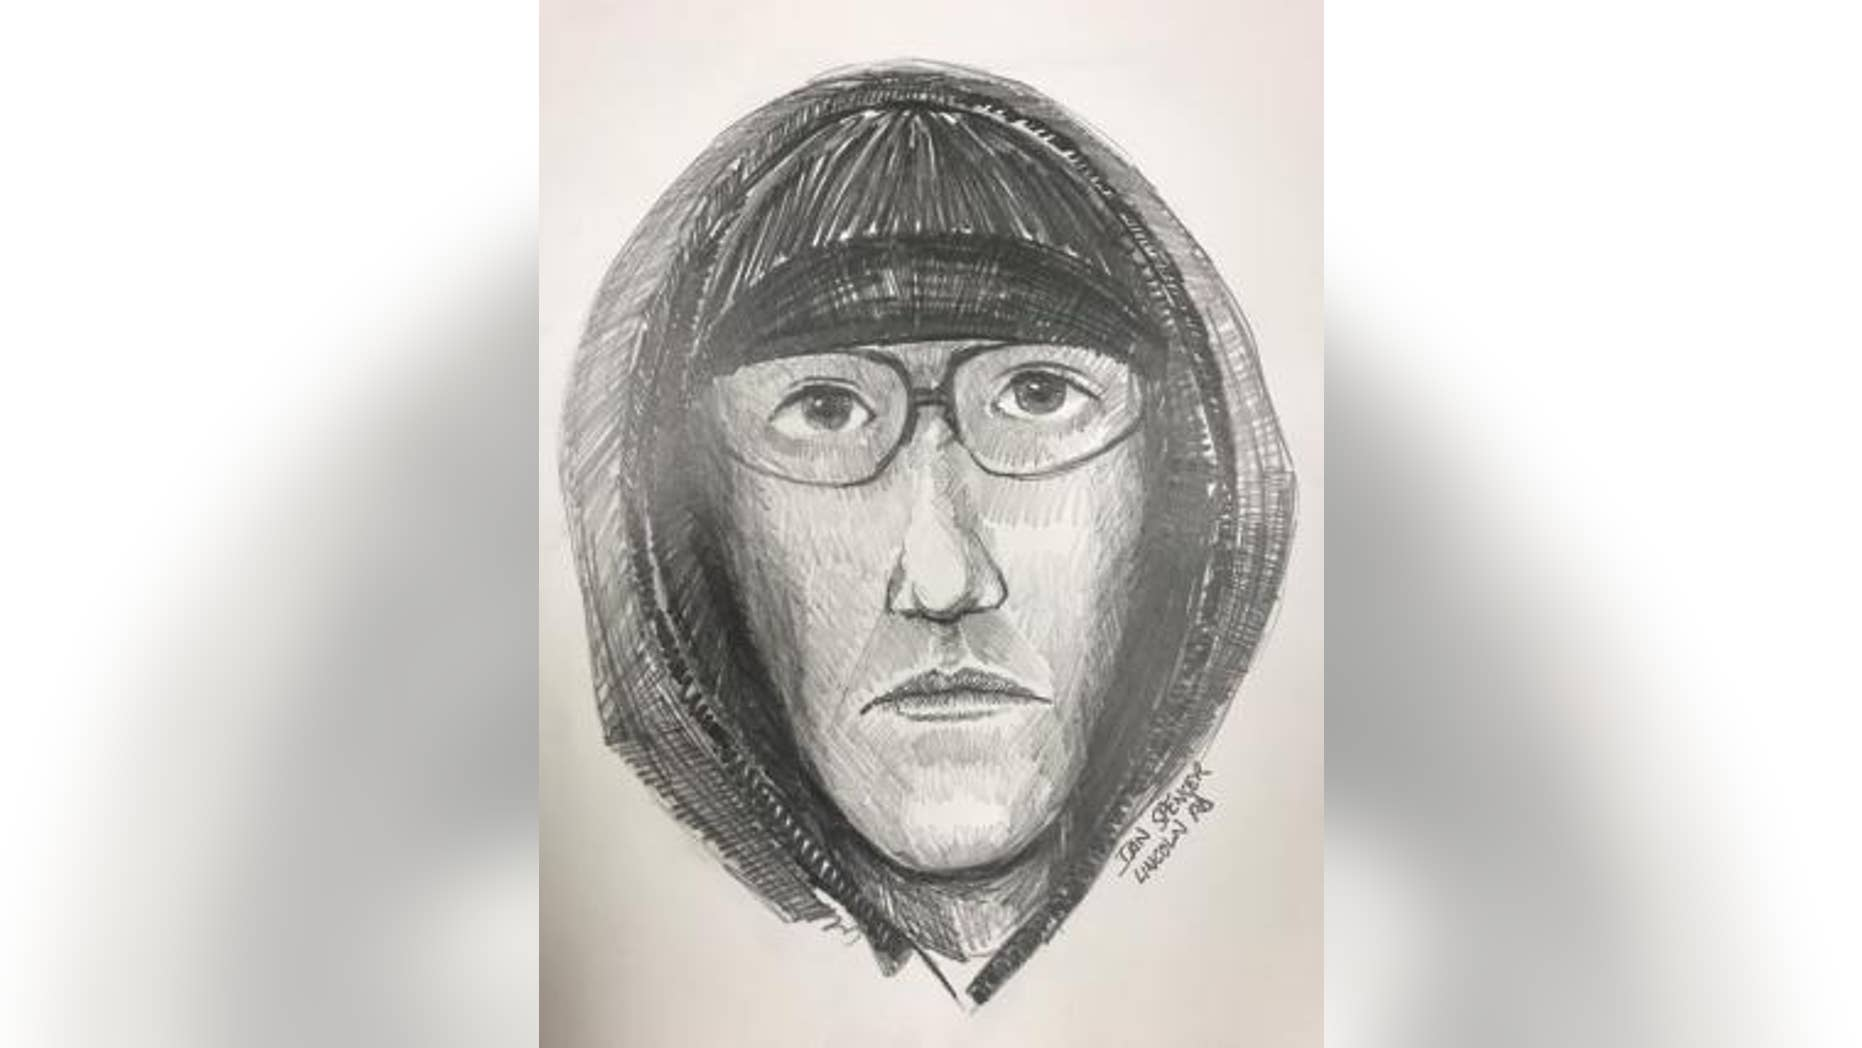 Police are looking for asuspect in his 20s who stabbed a man outside of Boston. The suspect may be linked to a second, similar attack.